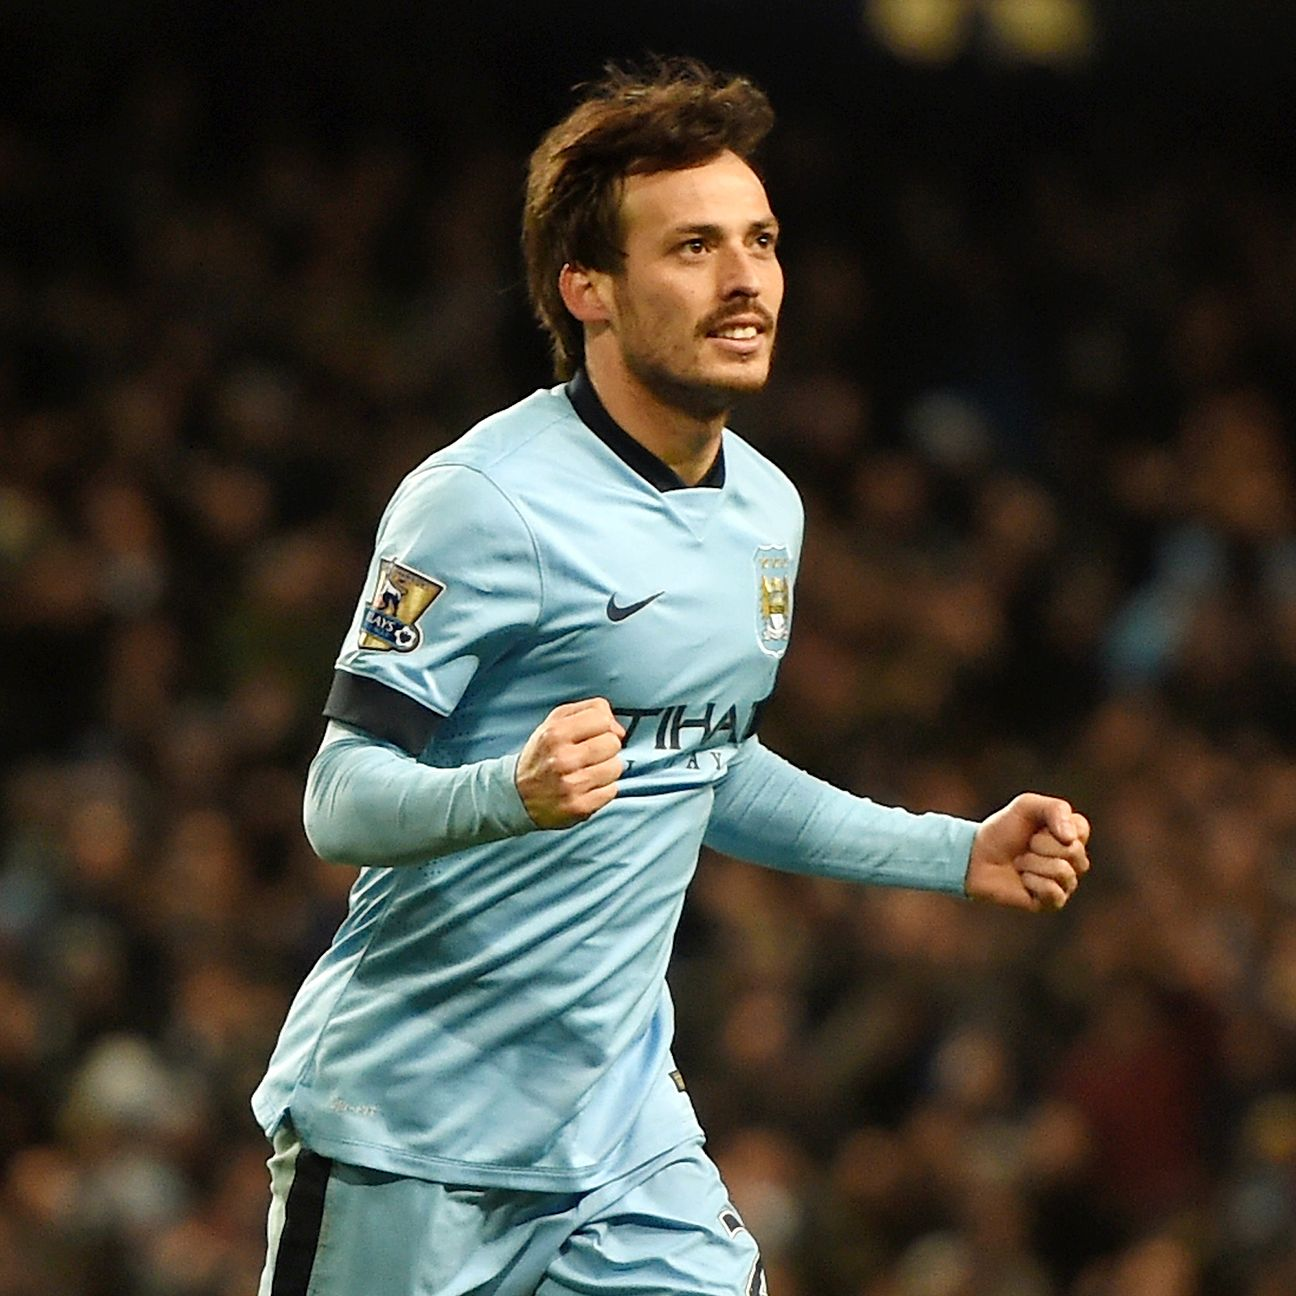 David Silva capped Manchester City's stellar evening with a second-half brace.